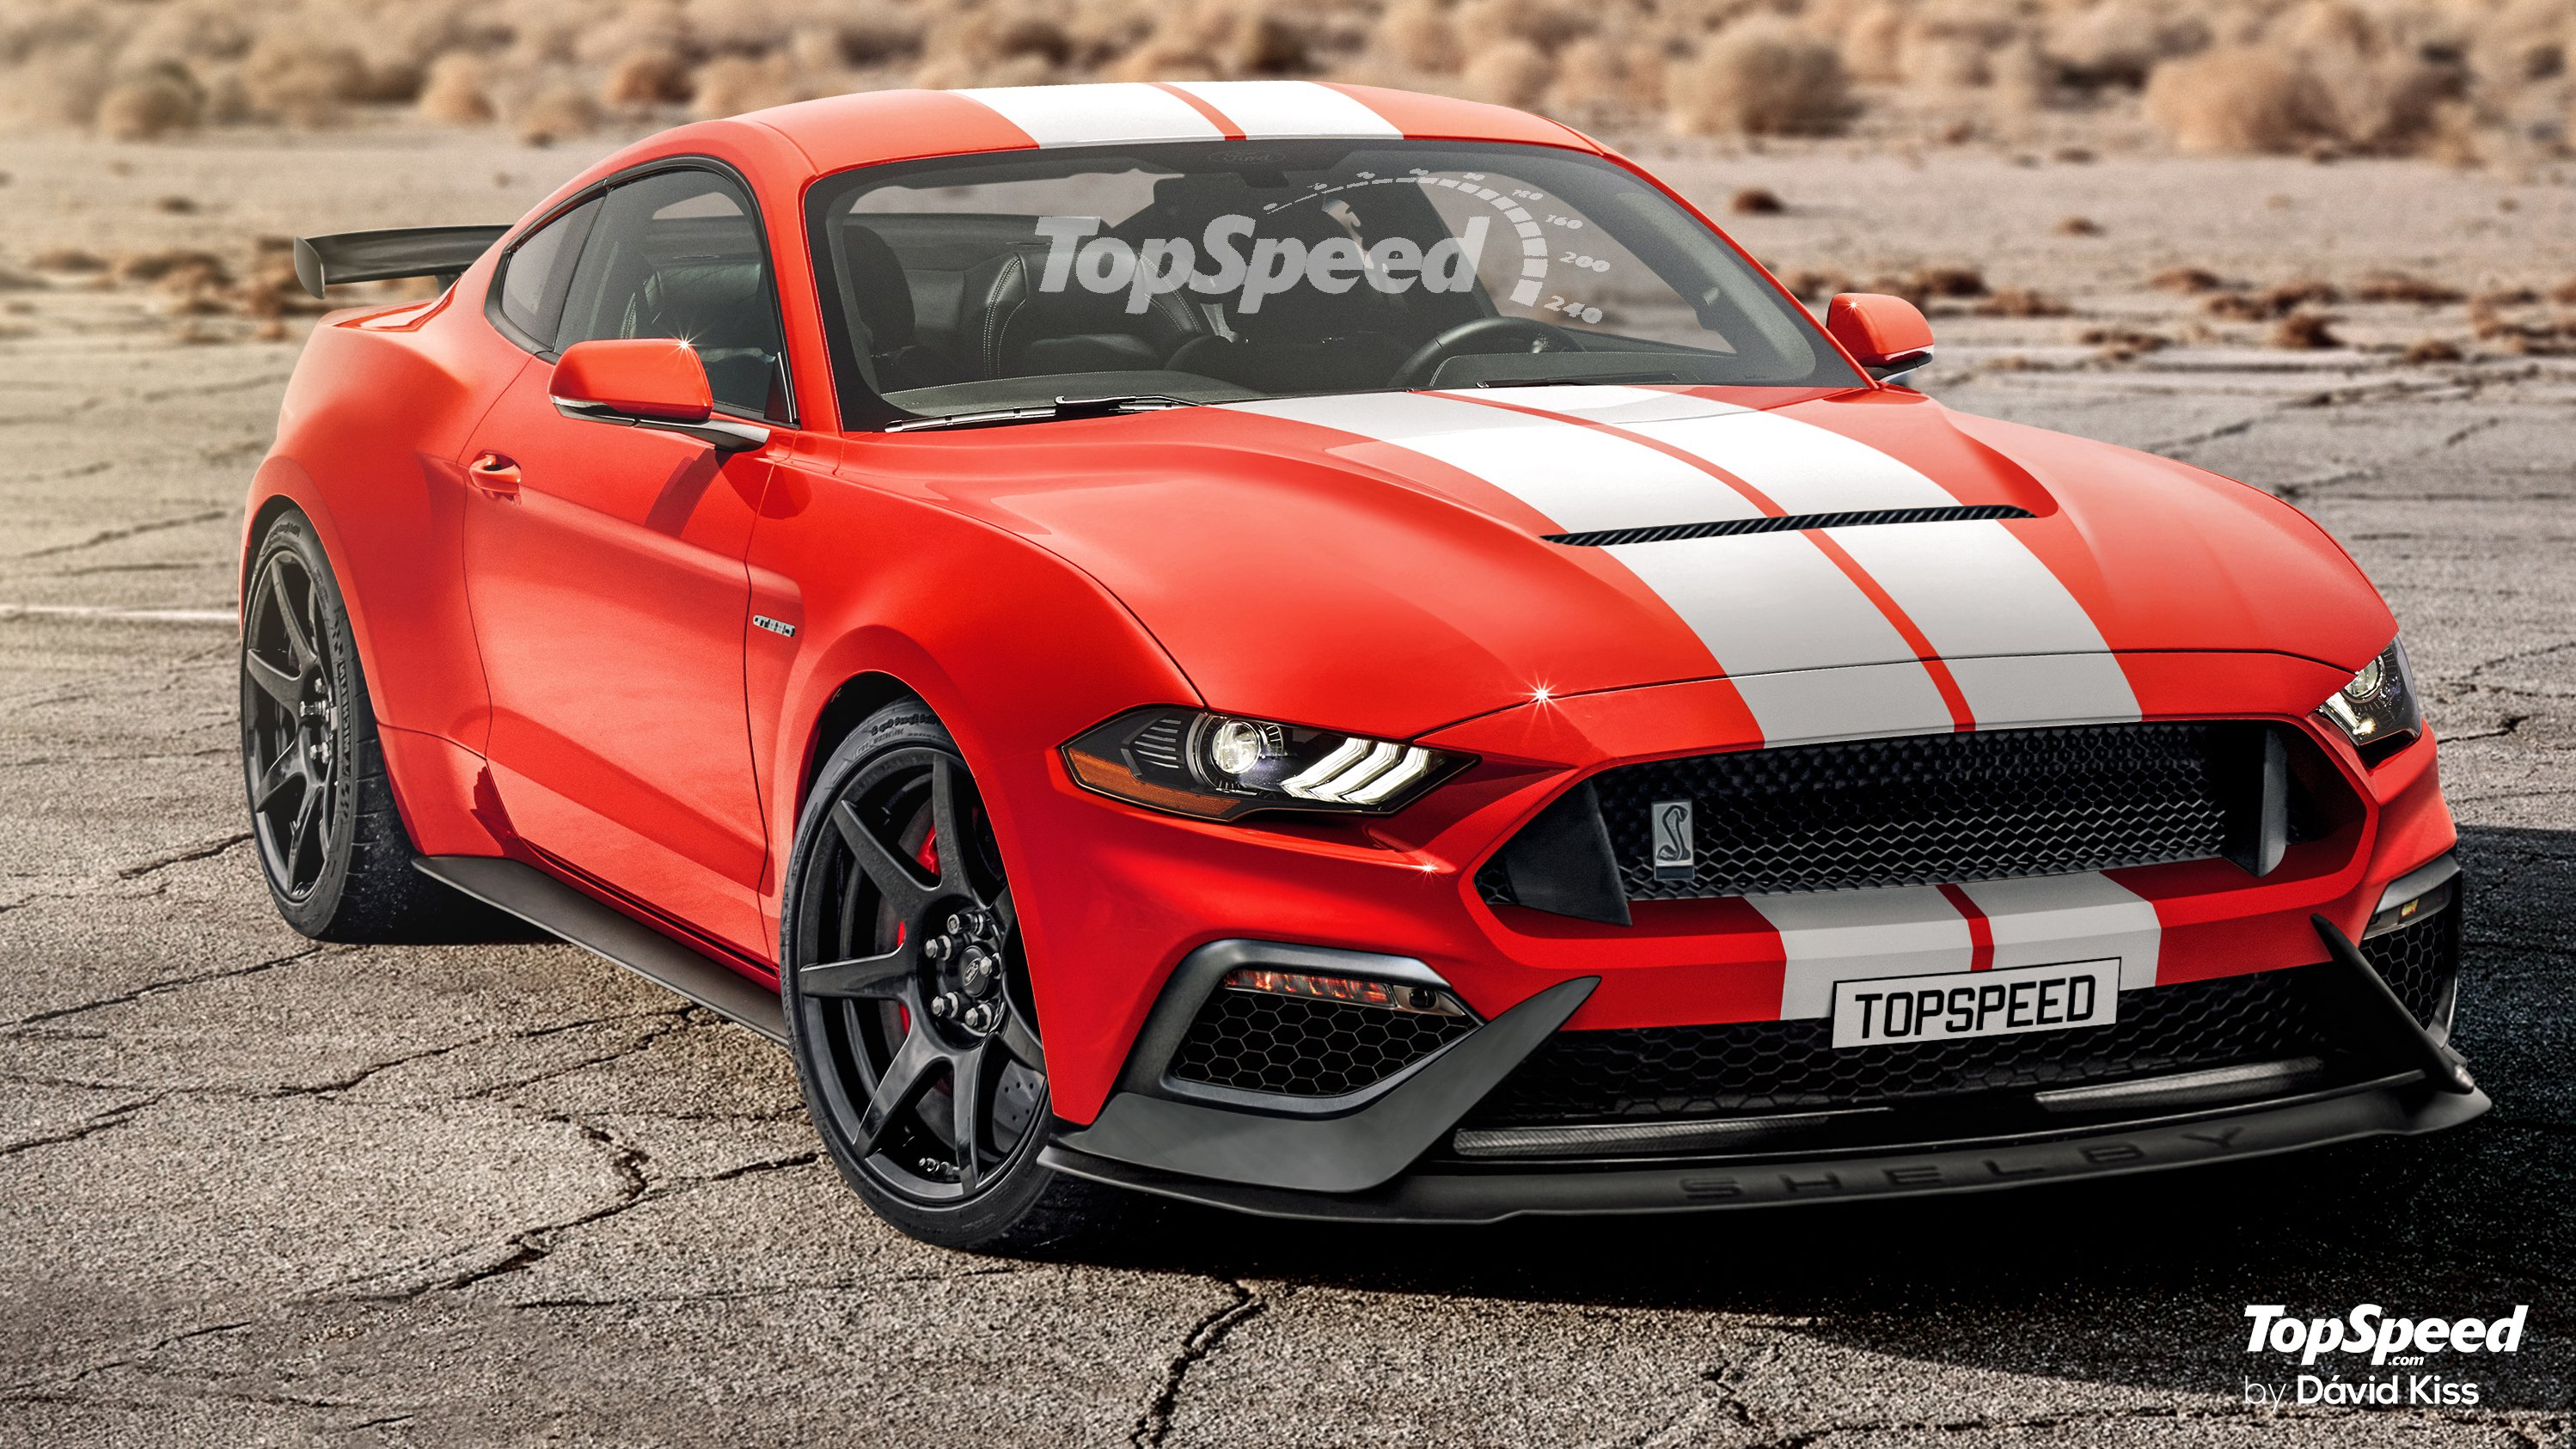 35 New 2019 Ford Mustang Shelby Gt500 Pictures